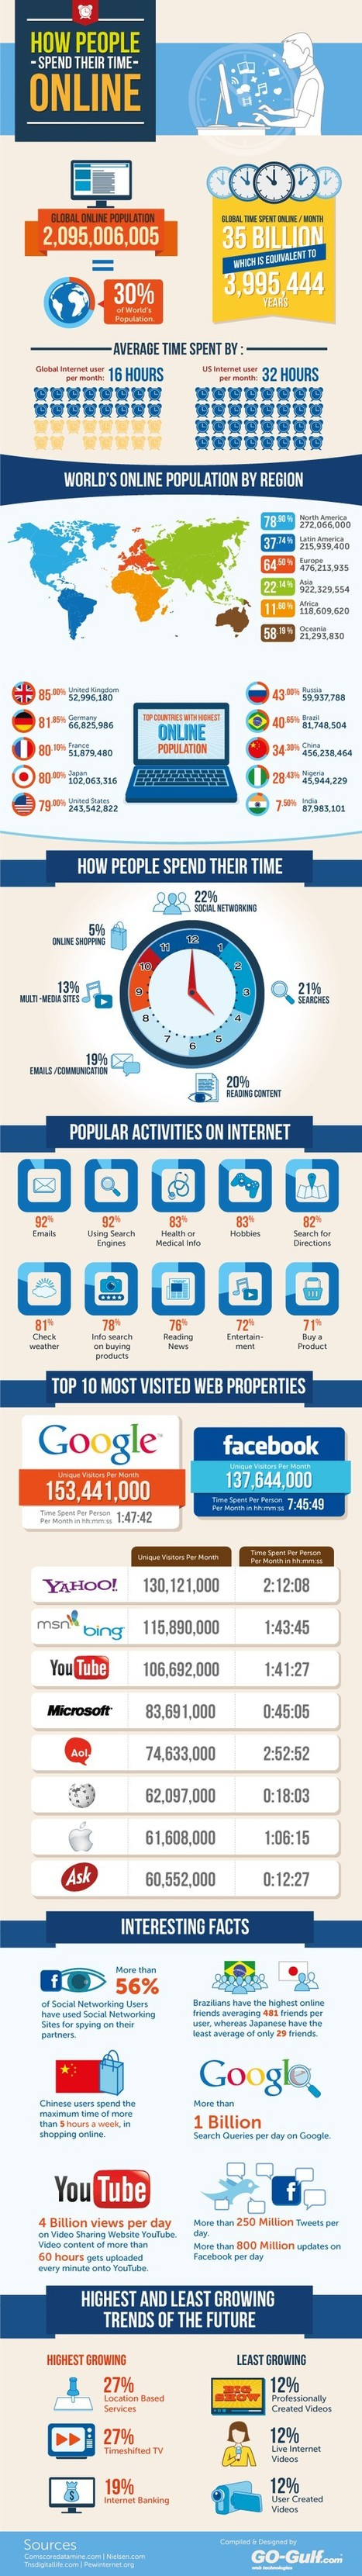 Social Media Infographics / How Do People Spend Their Time Online? | DV8 Digital Marketing Tips and Insight | Scoop.it